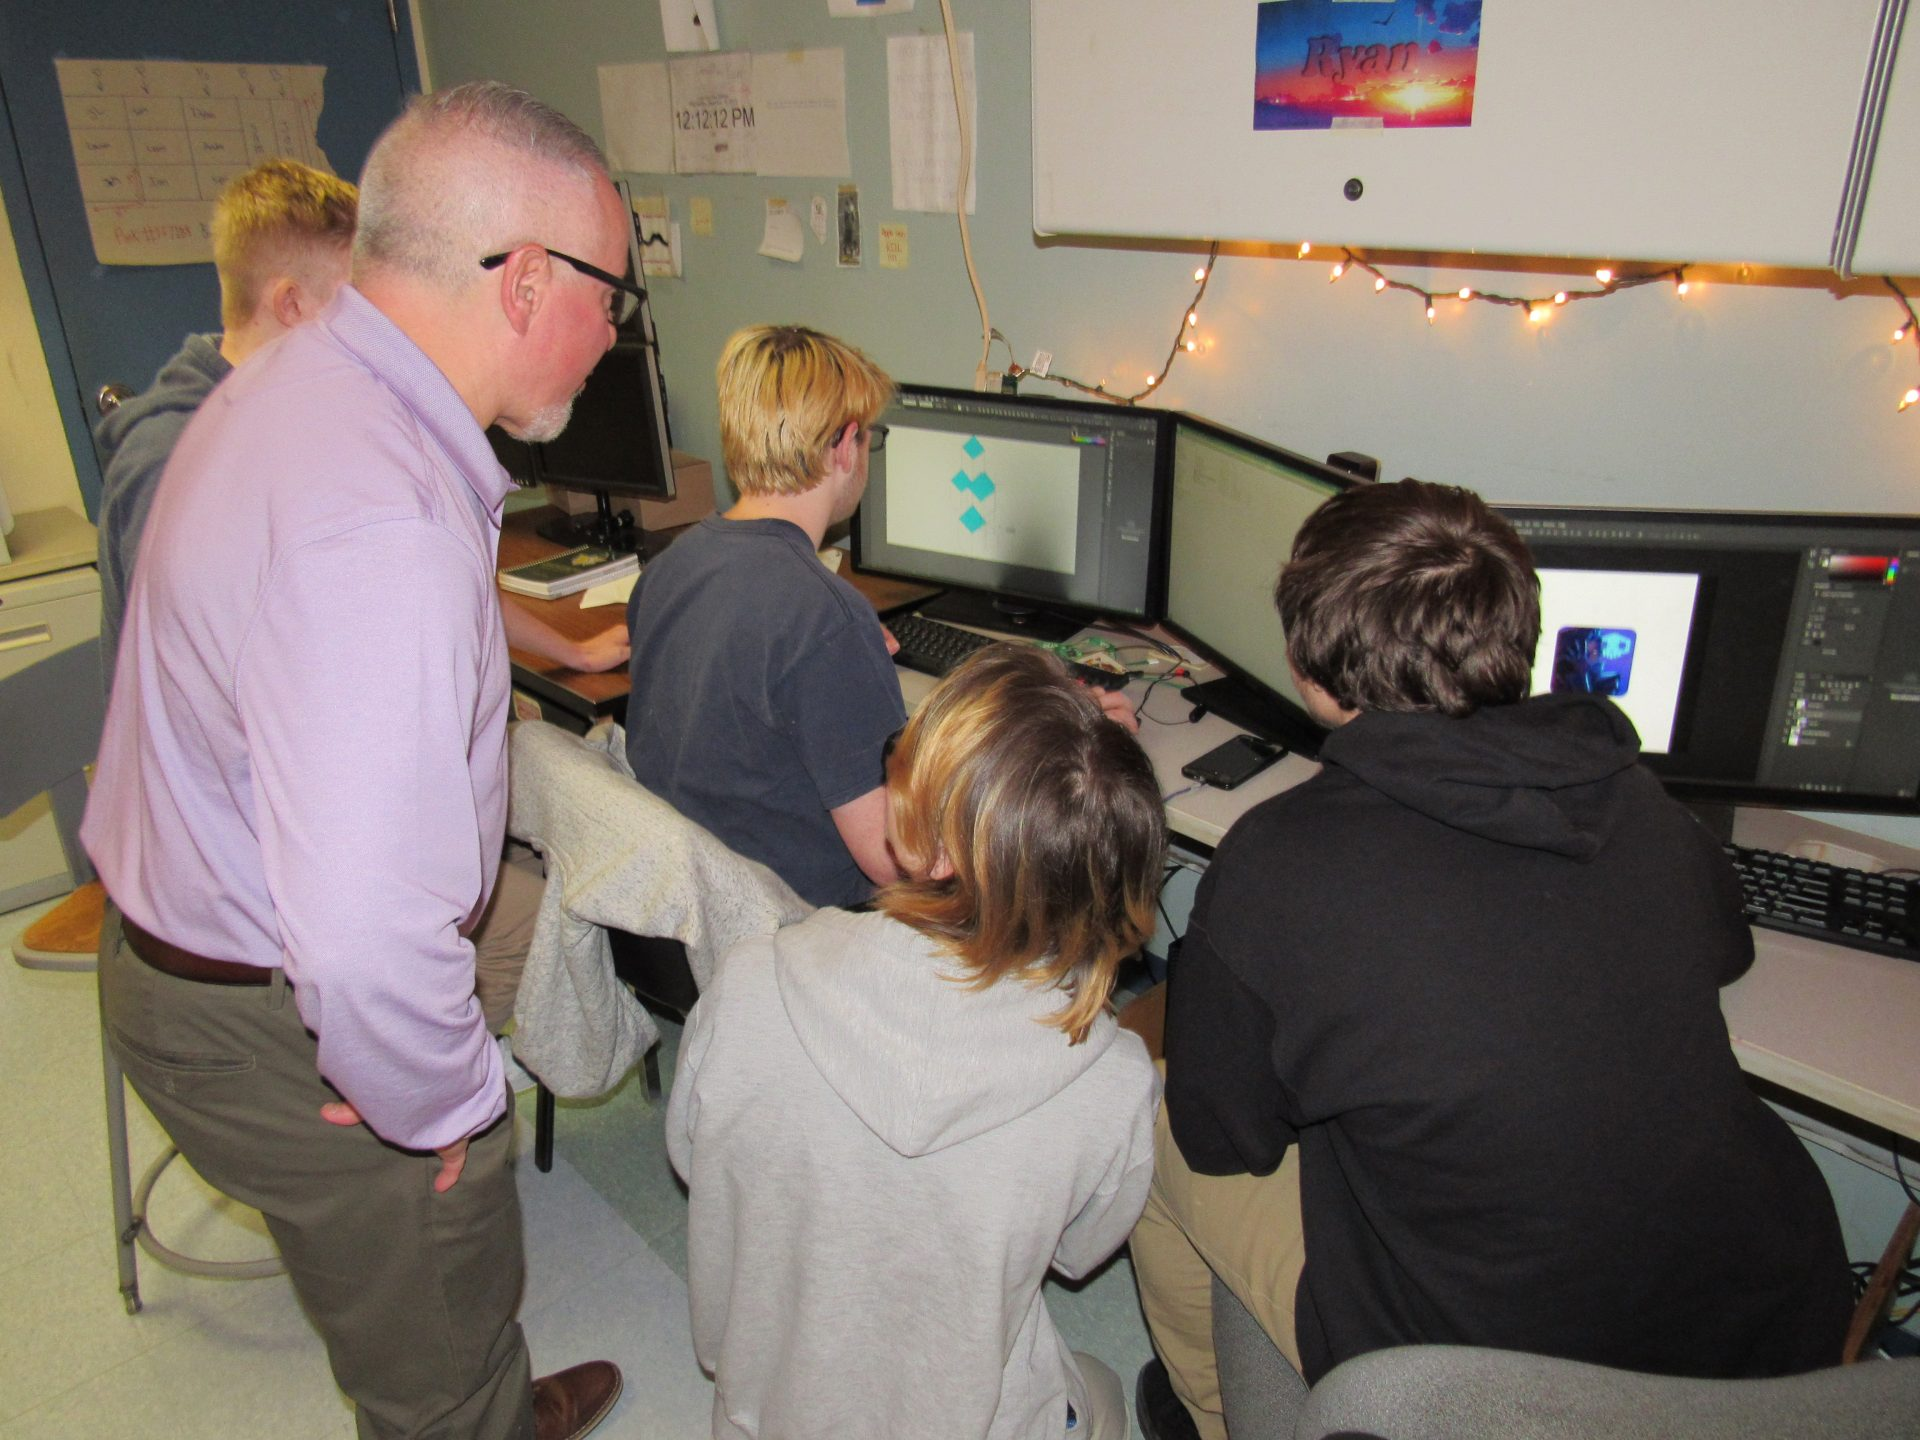 Info tech Teacher helping students